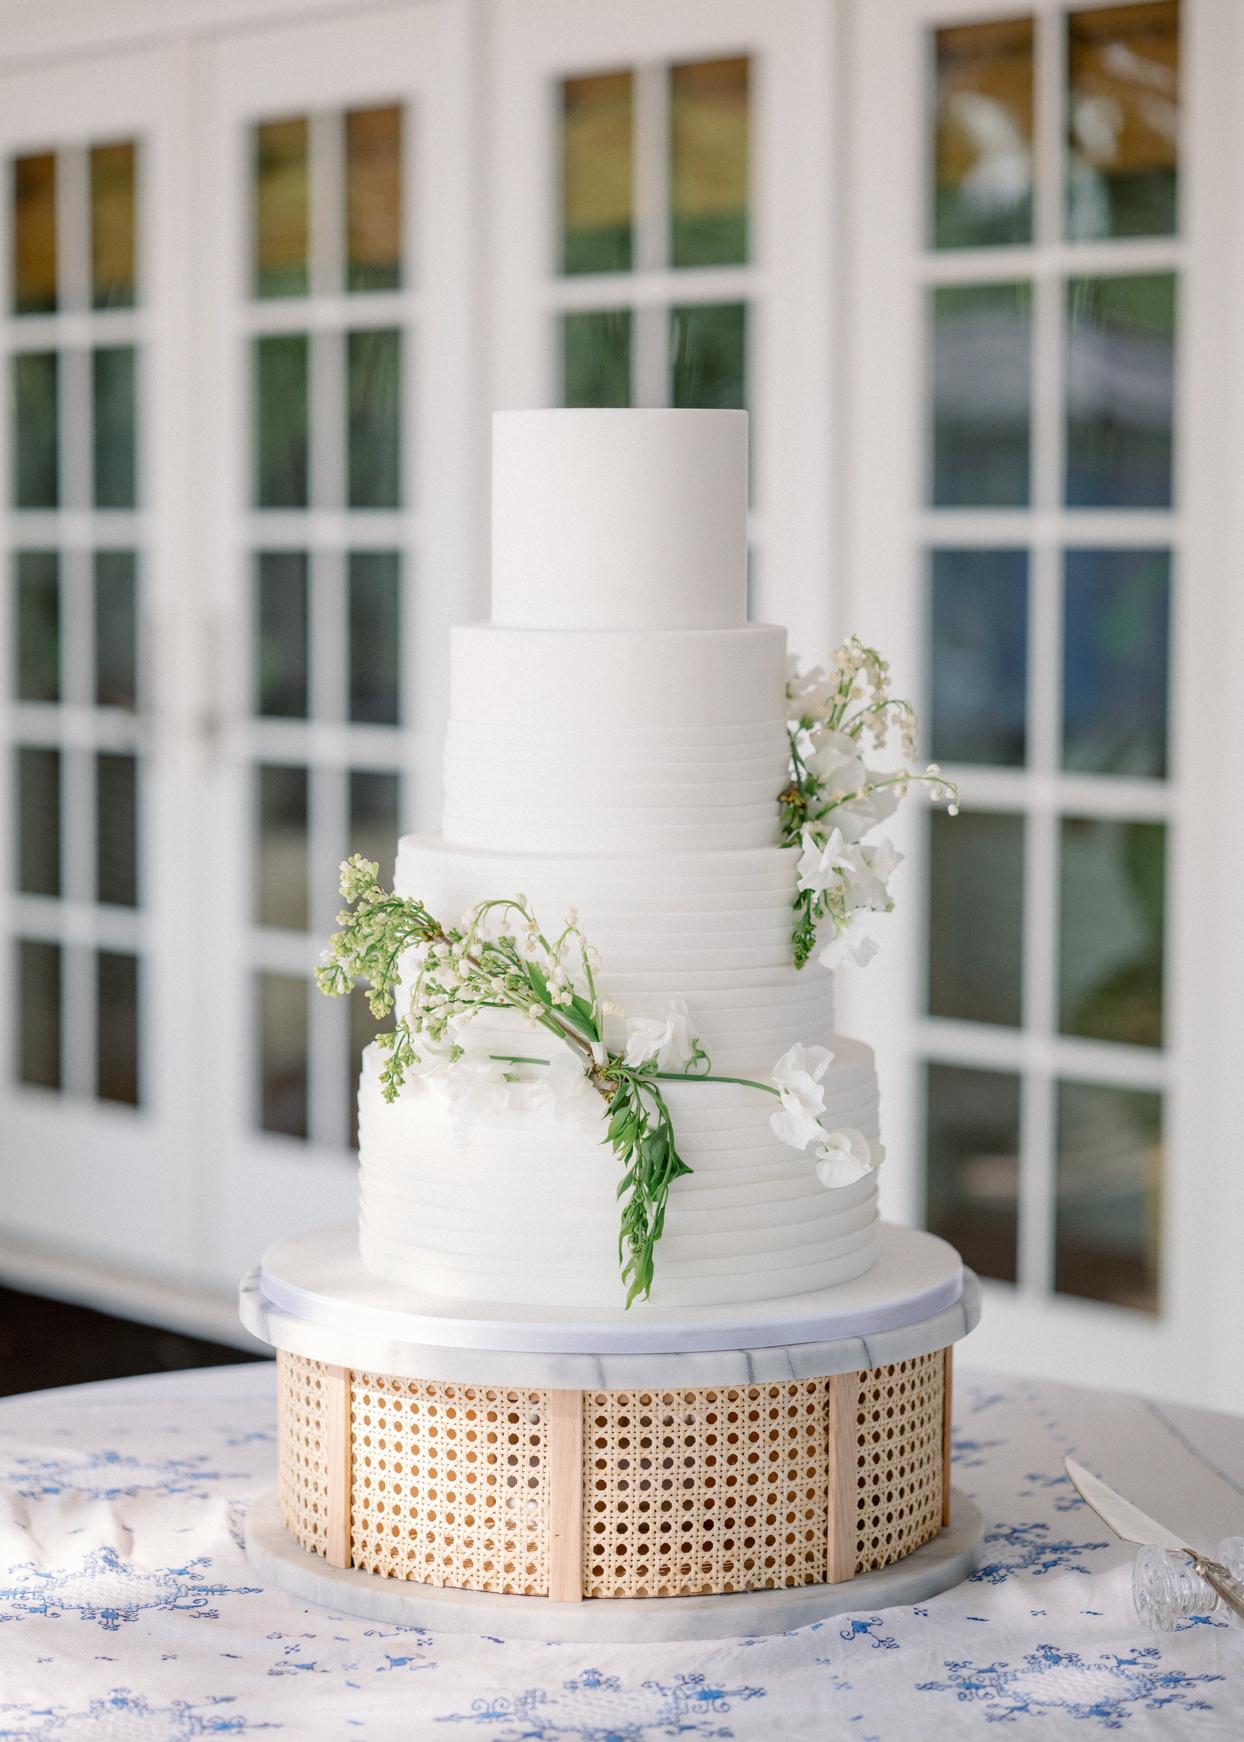 four tiered white frosted wedding cake with white lily of the valley floral decor